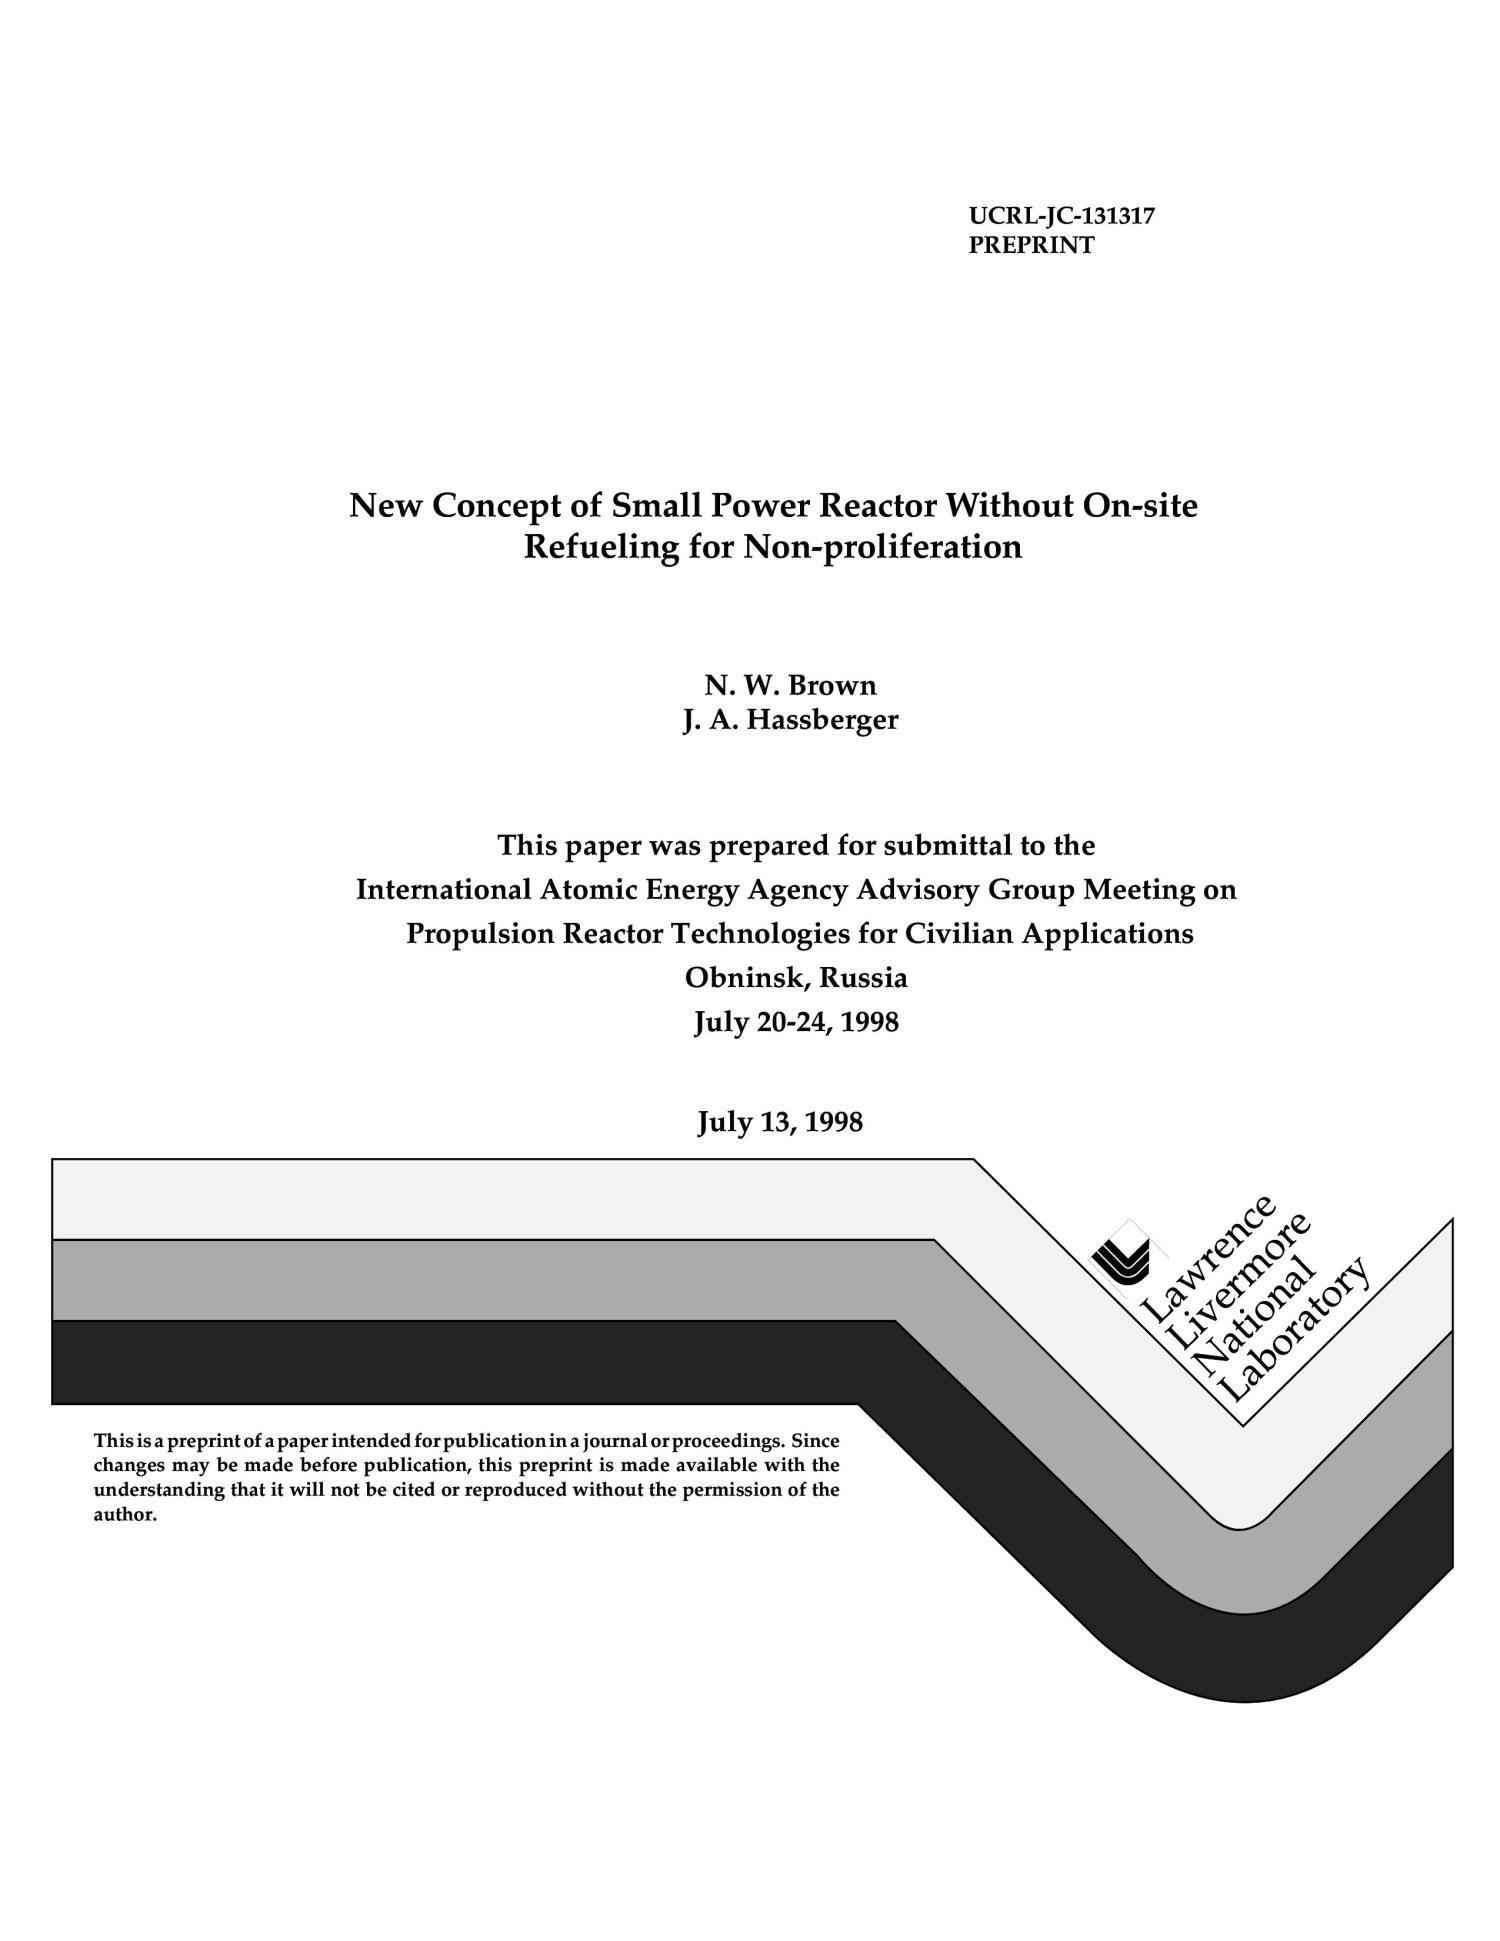 New concept of small power reactor without on-site refueling for non-proliferation                                                                                                      [Sequence #]: 1 of 20